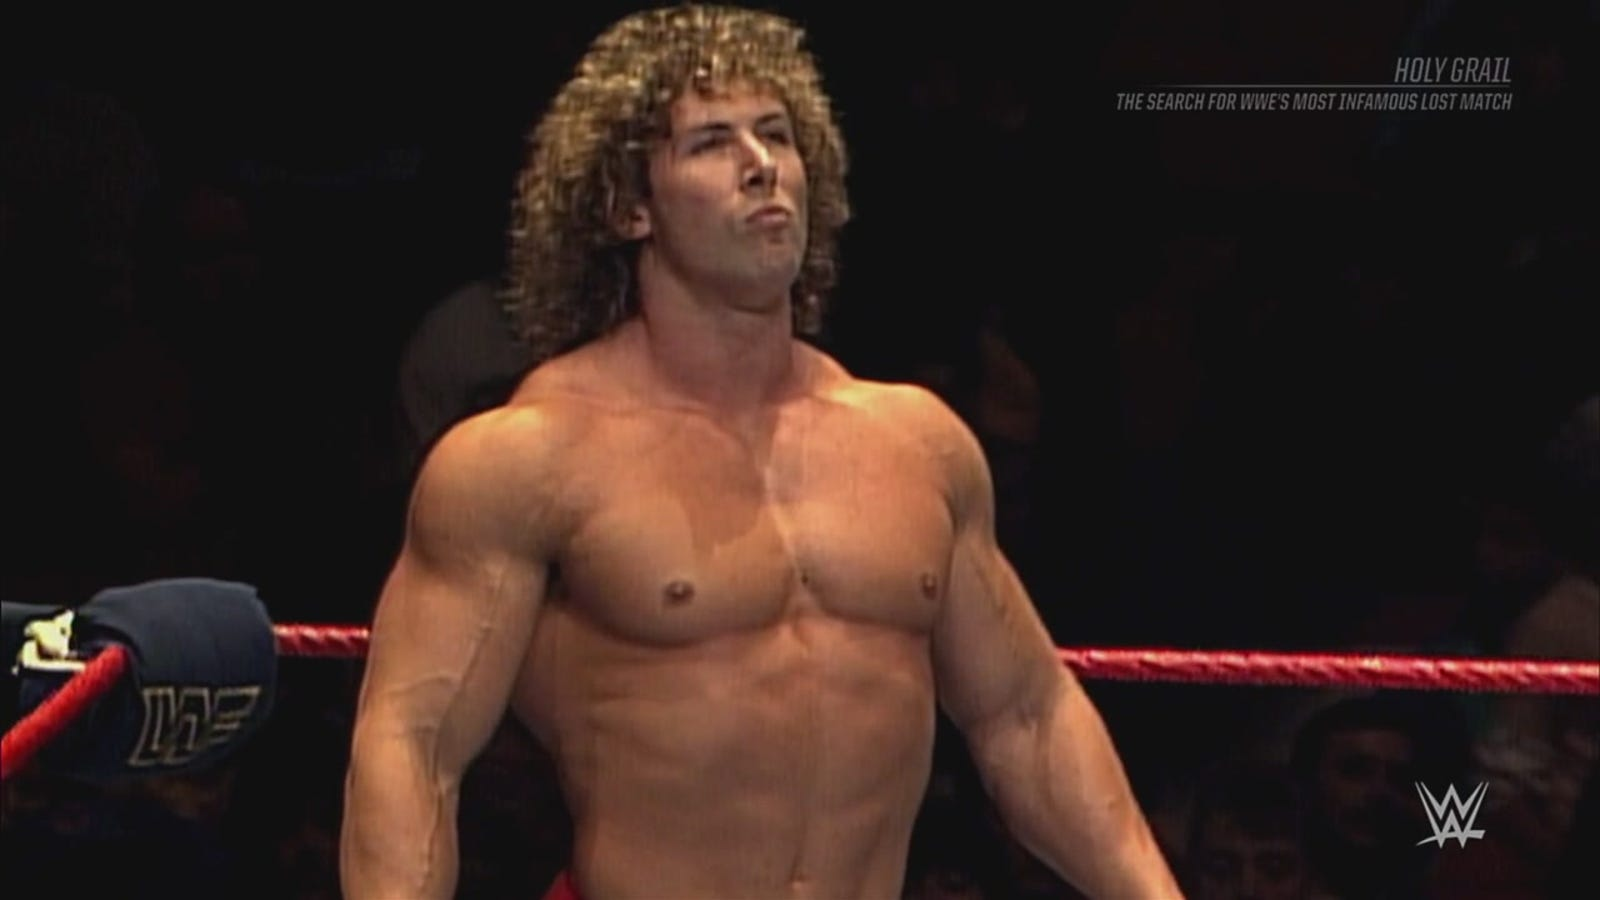 Bret Hart's Holy Grail Miracle Match With Tom Magee Is Finally Here, And It's Great